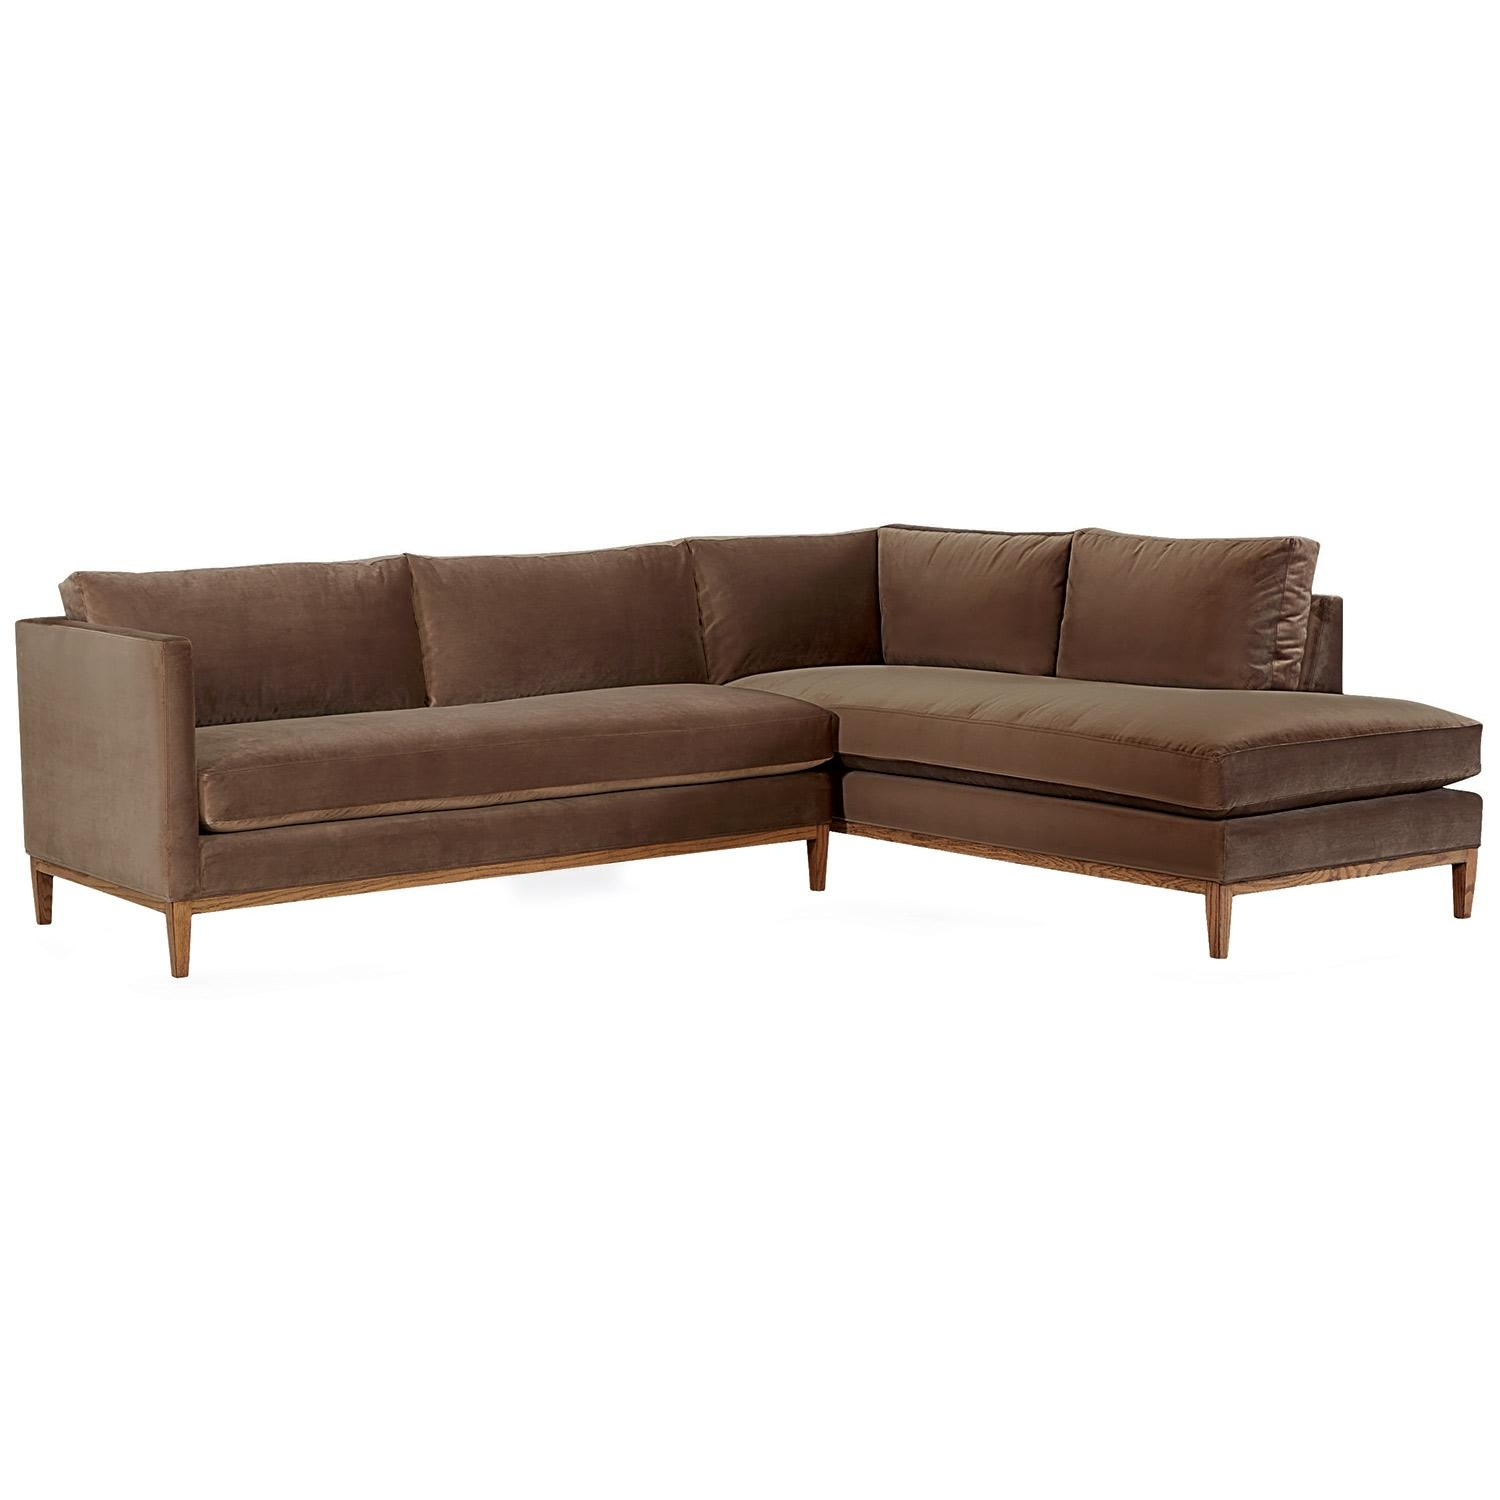 Modern Sofas, Modern Couches, Leather Sofas & Contemporary Regarding Stratford Sofas (Image 8 of 20)